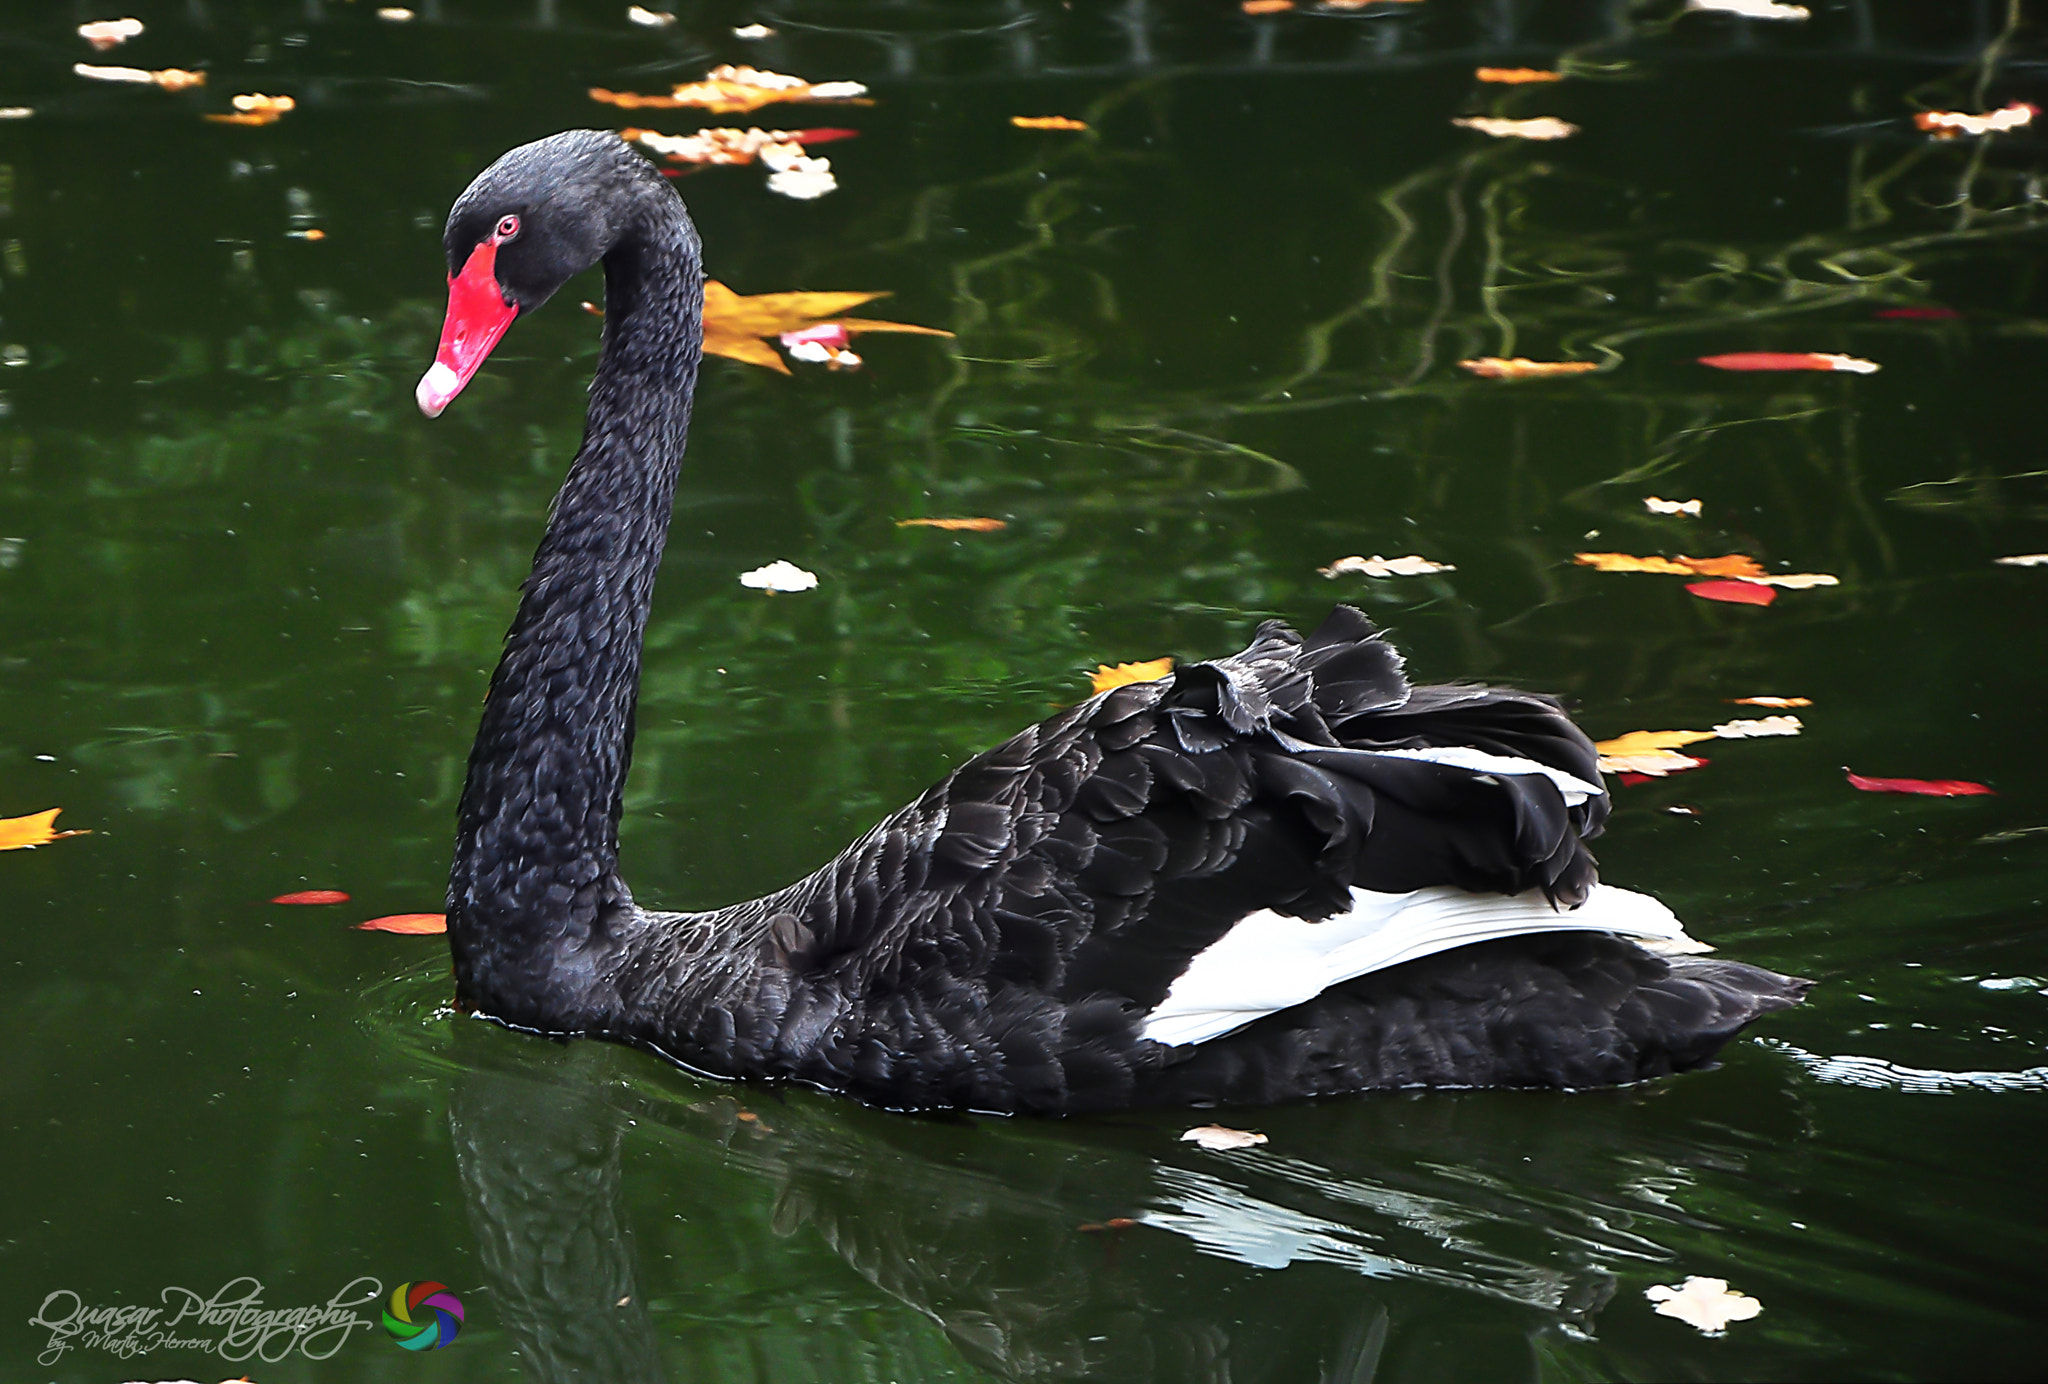 Photograph Cisne Negro. by Martin Herrera on 500px